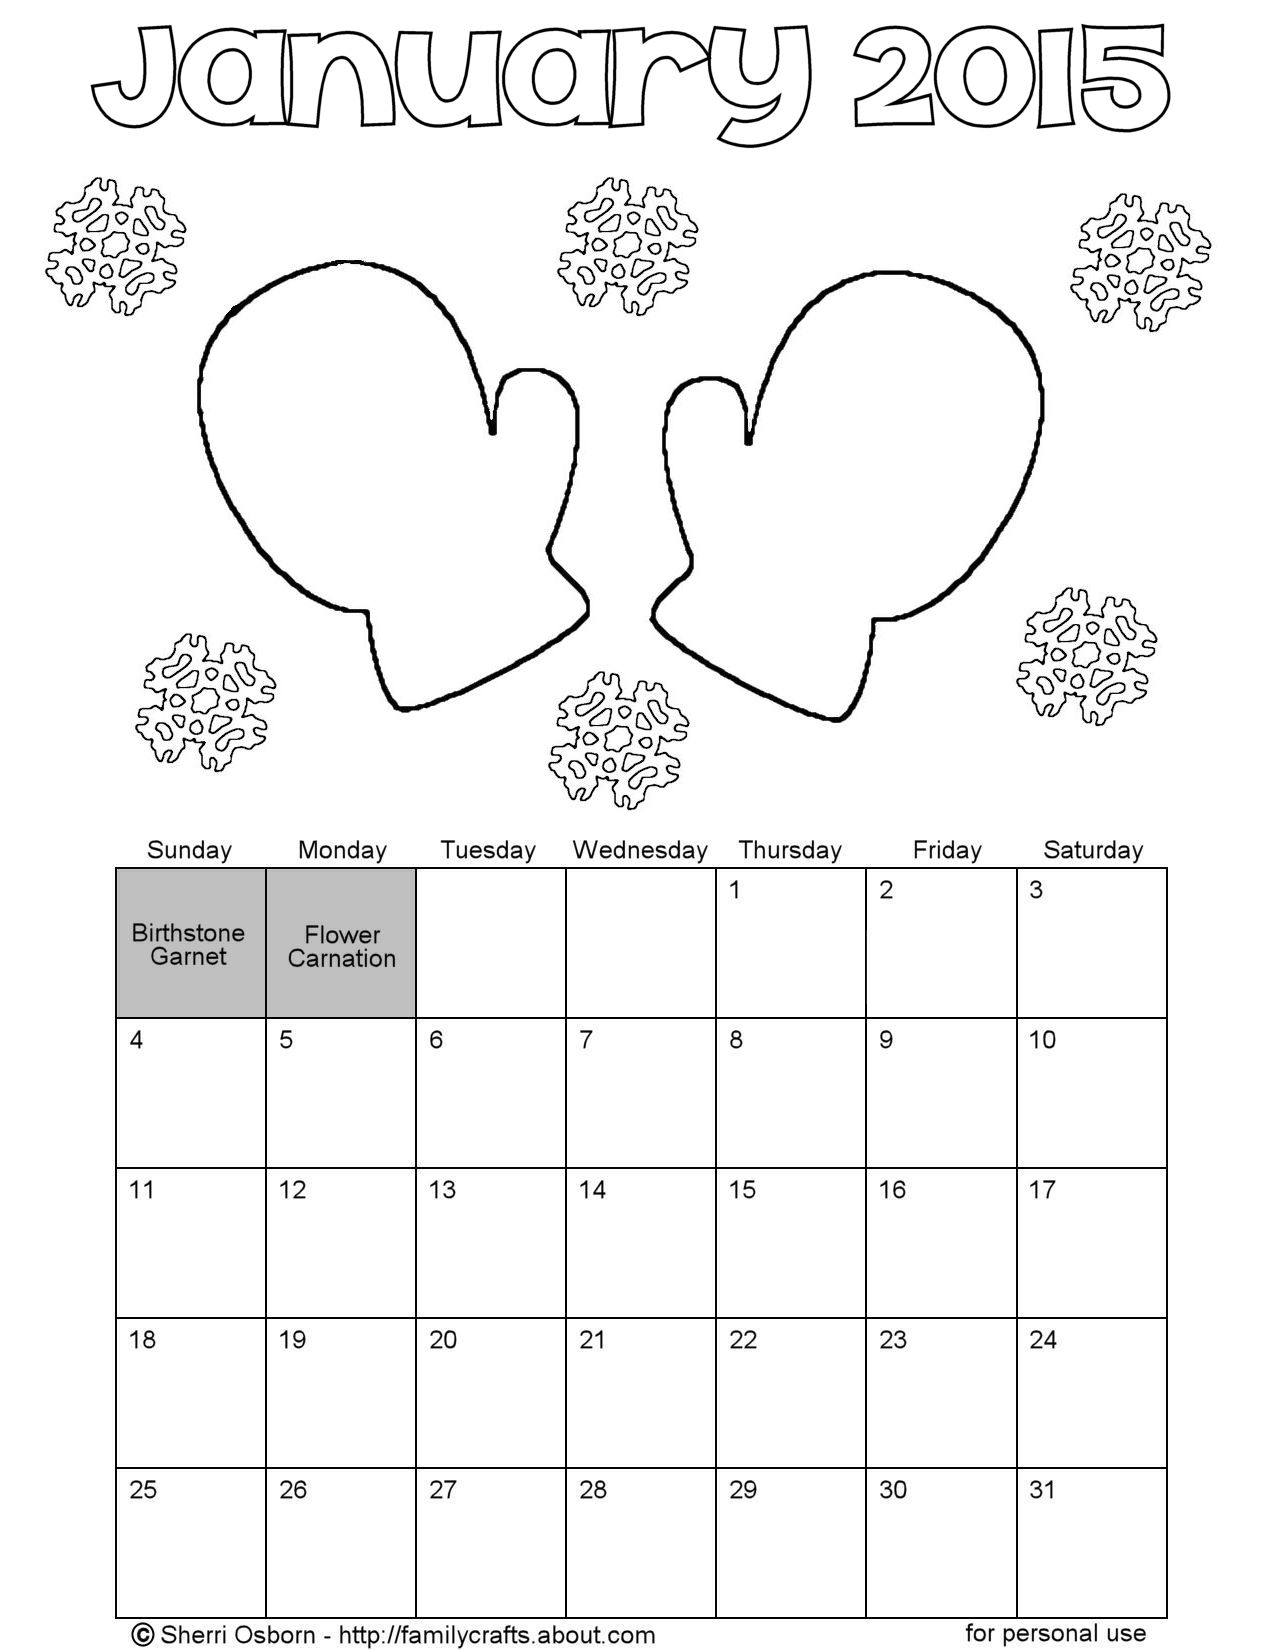 January 2015 Mitten Calendar Coloring Page